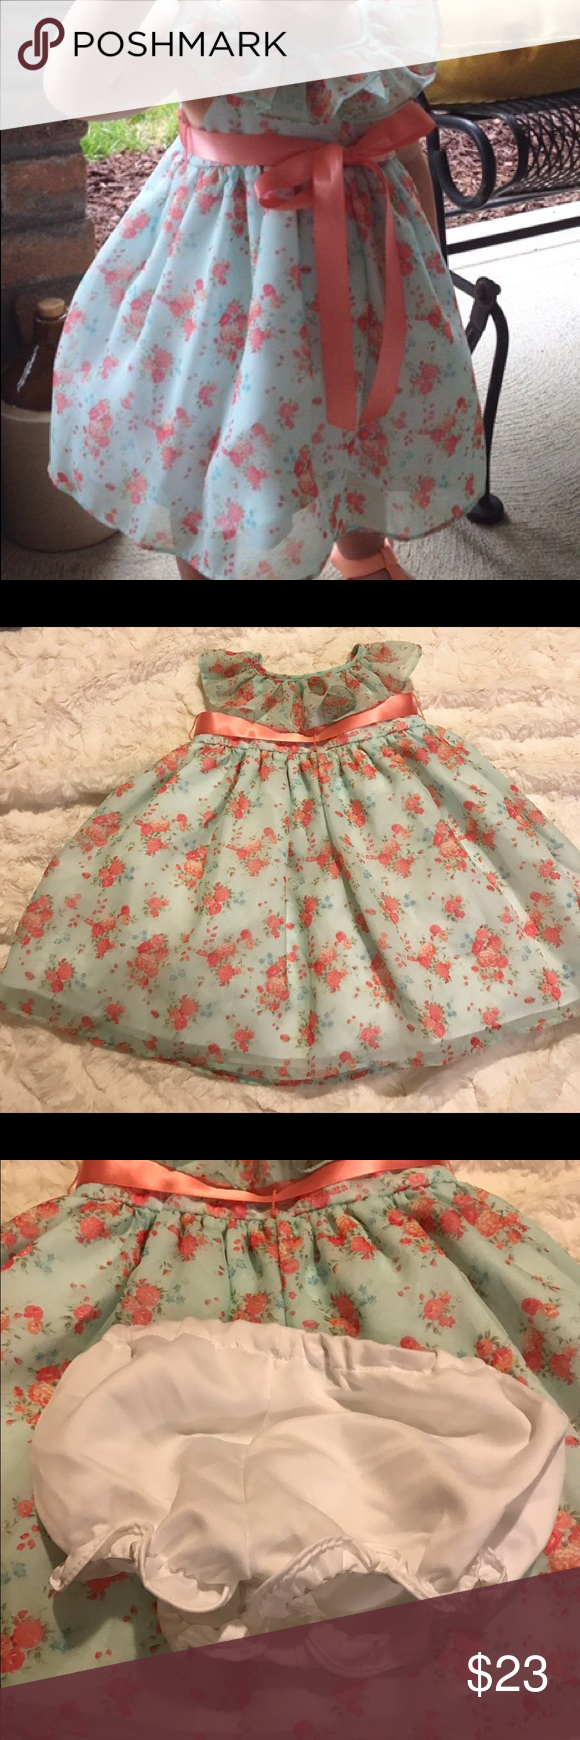 Laura Ashley Dress Size 12 months, this dress is mint and peach and crazy adorable!!!  Perfect condition, only worn 1 time. Laura Ashley Dresses Formal